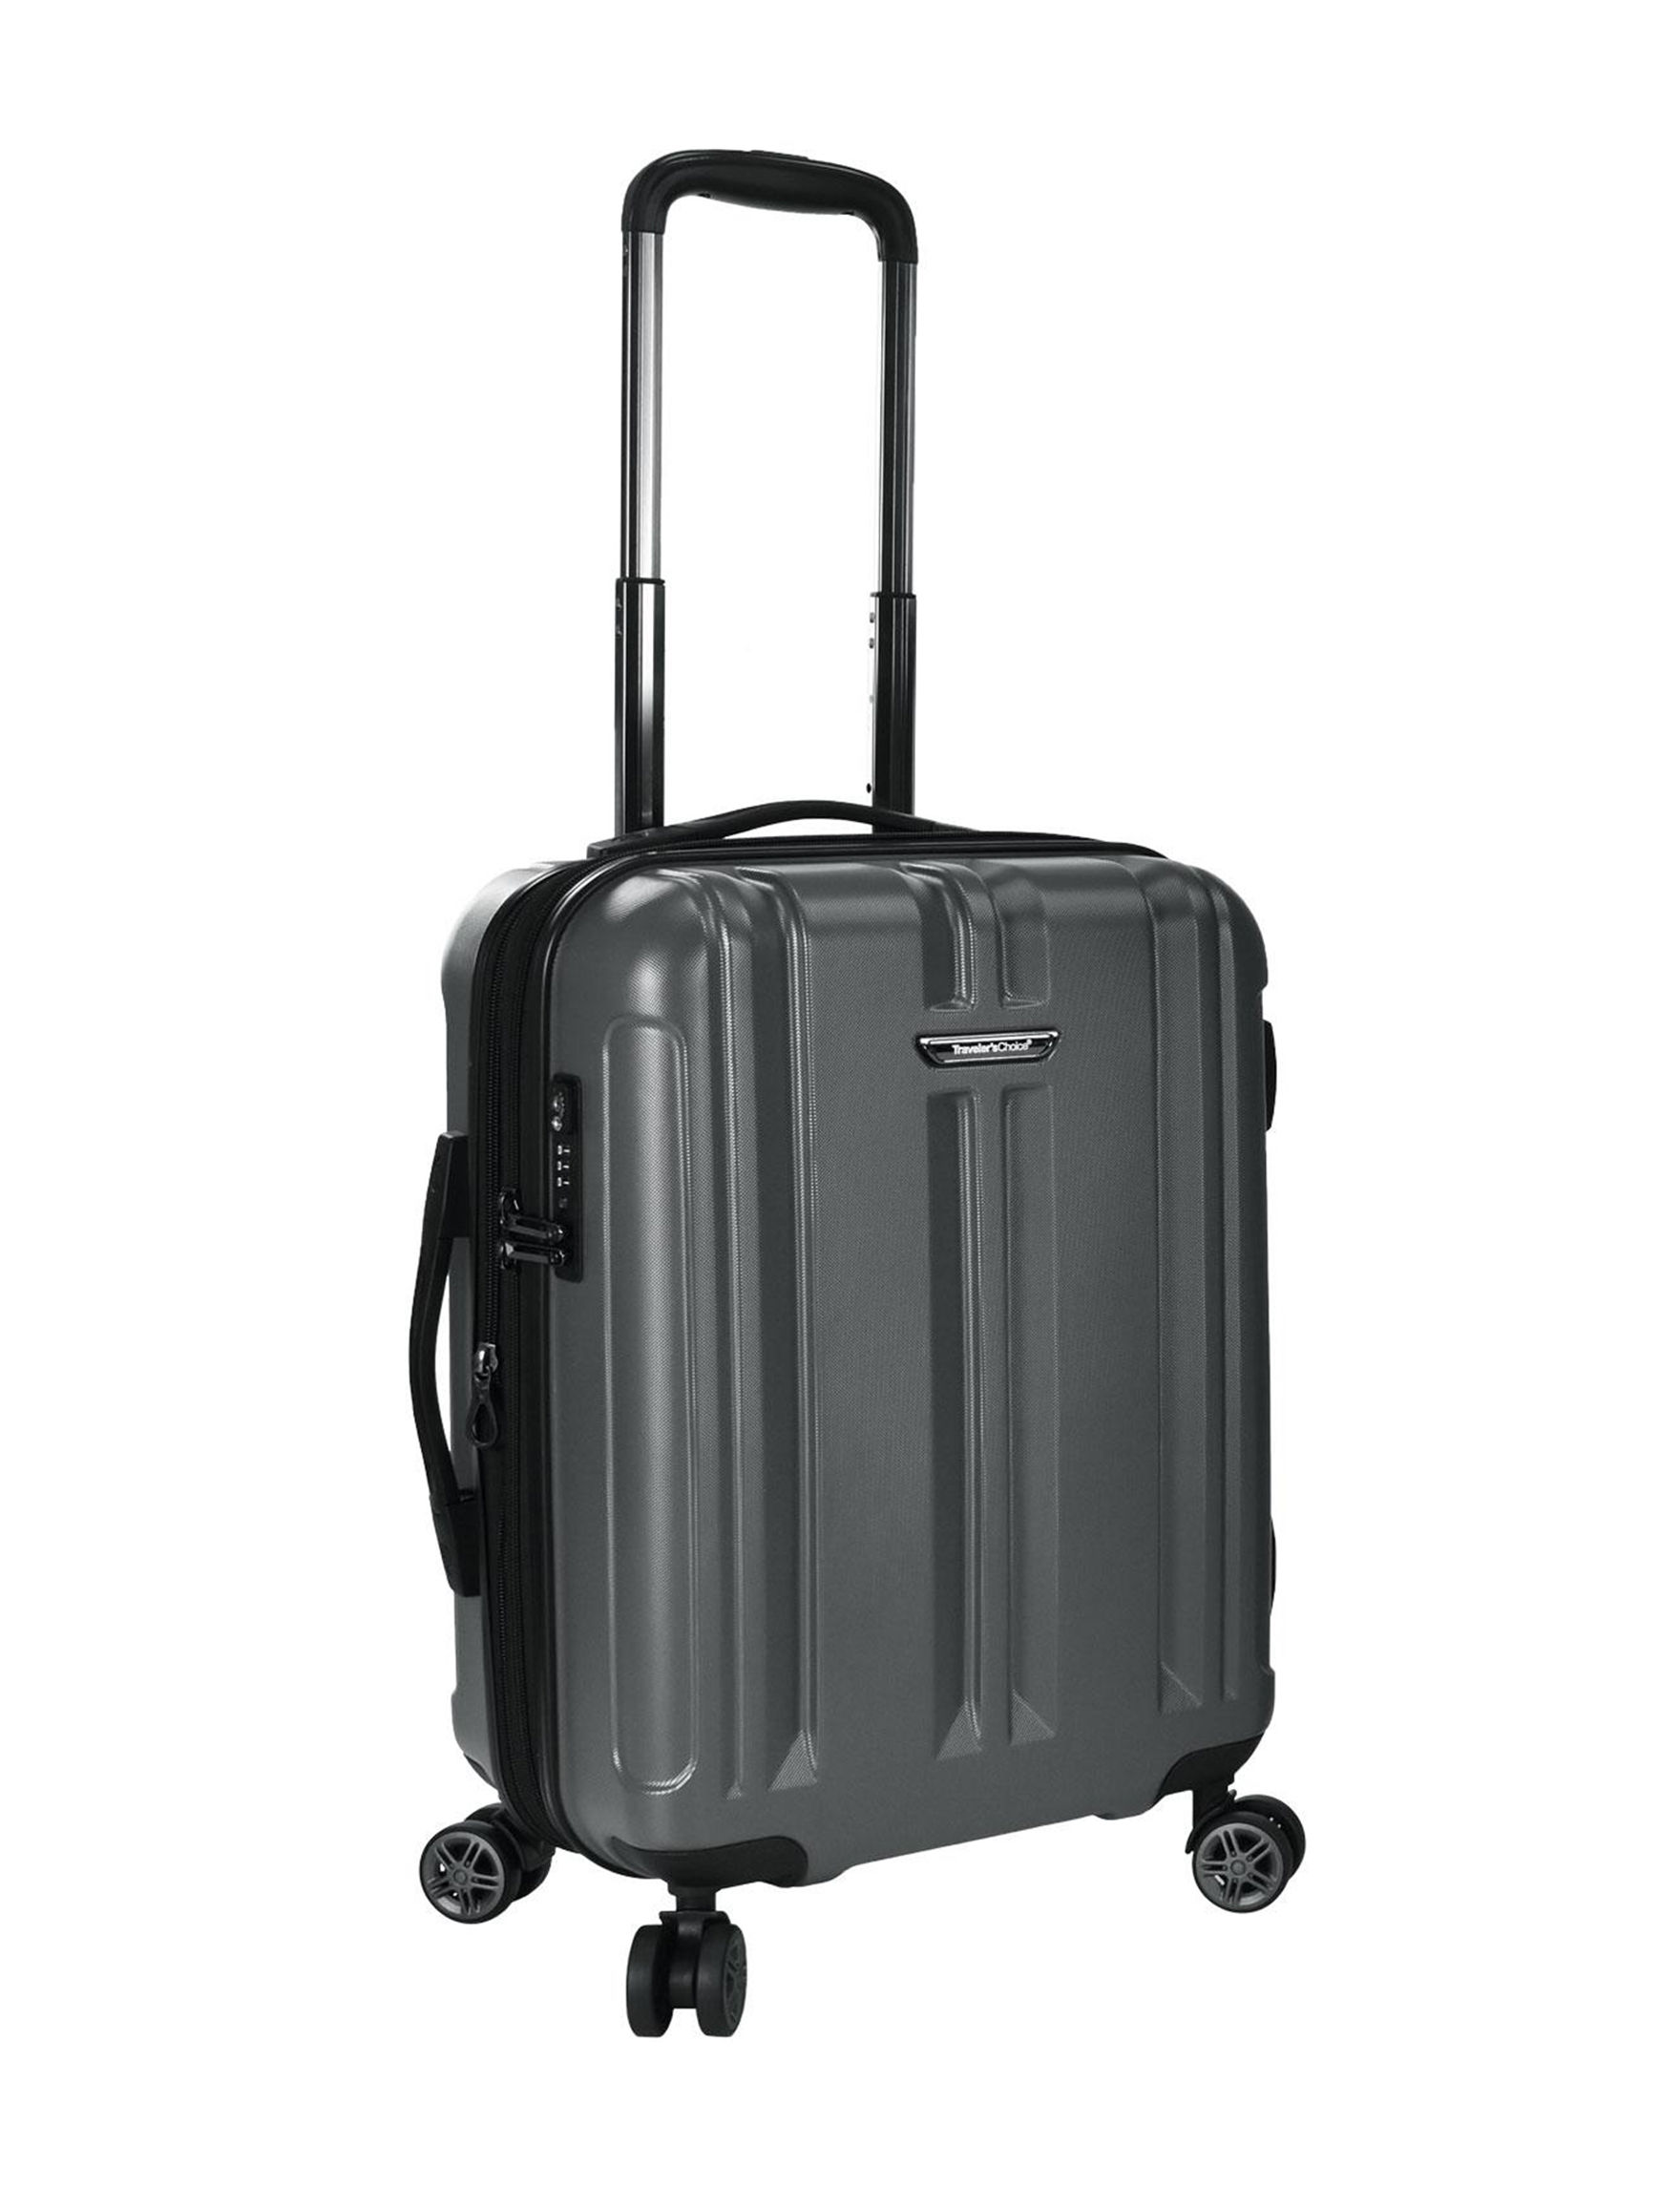 Travelers Choice Grey Carry On Luggage Upright Spinners